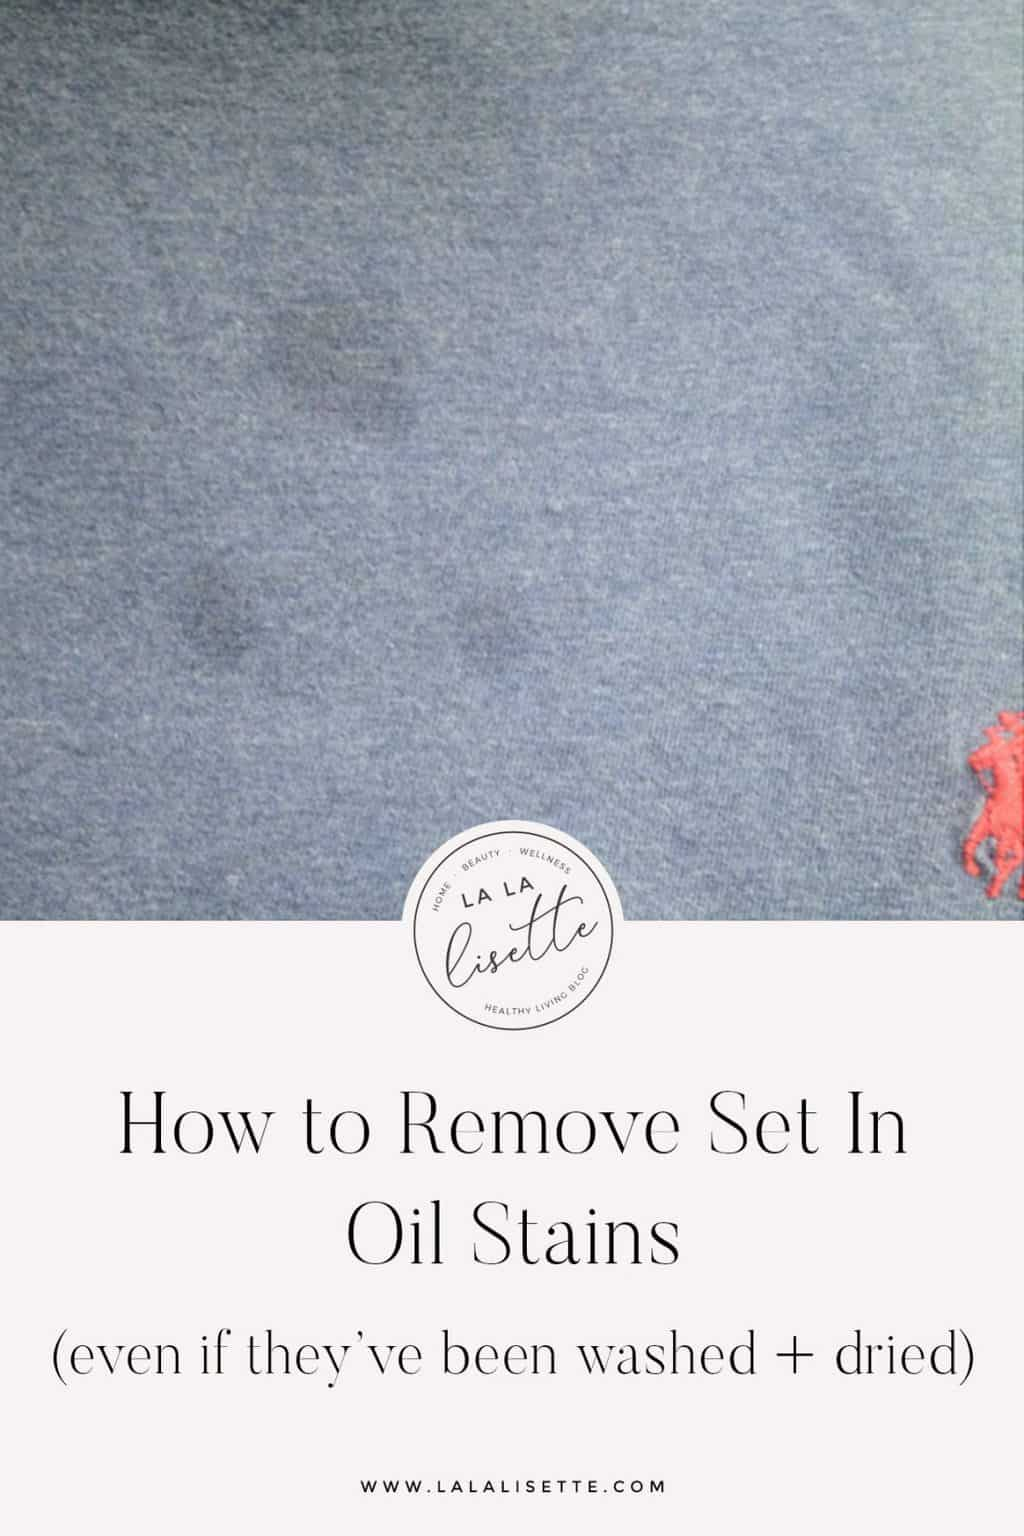 graphic with text: How to Remove Set In Oil Stains (even if they've been washed + dried) www.lalalisette.com